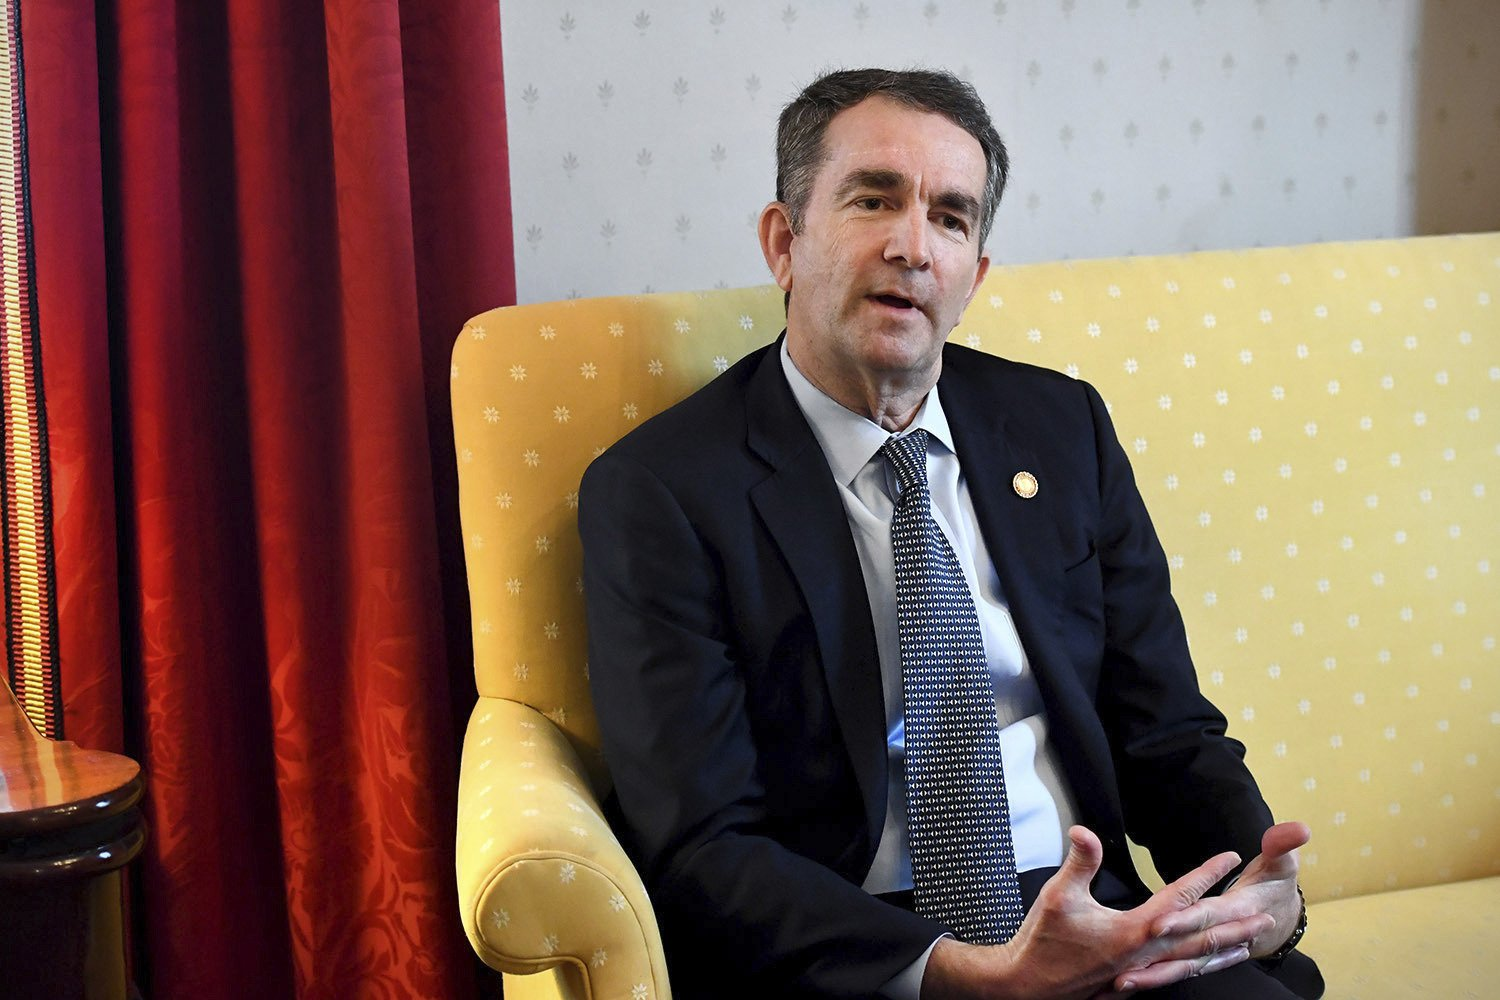 The Latest: Black caucus willing to meet with Northam